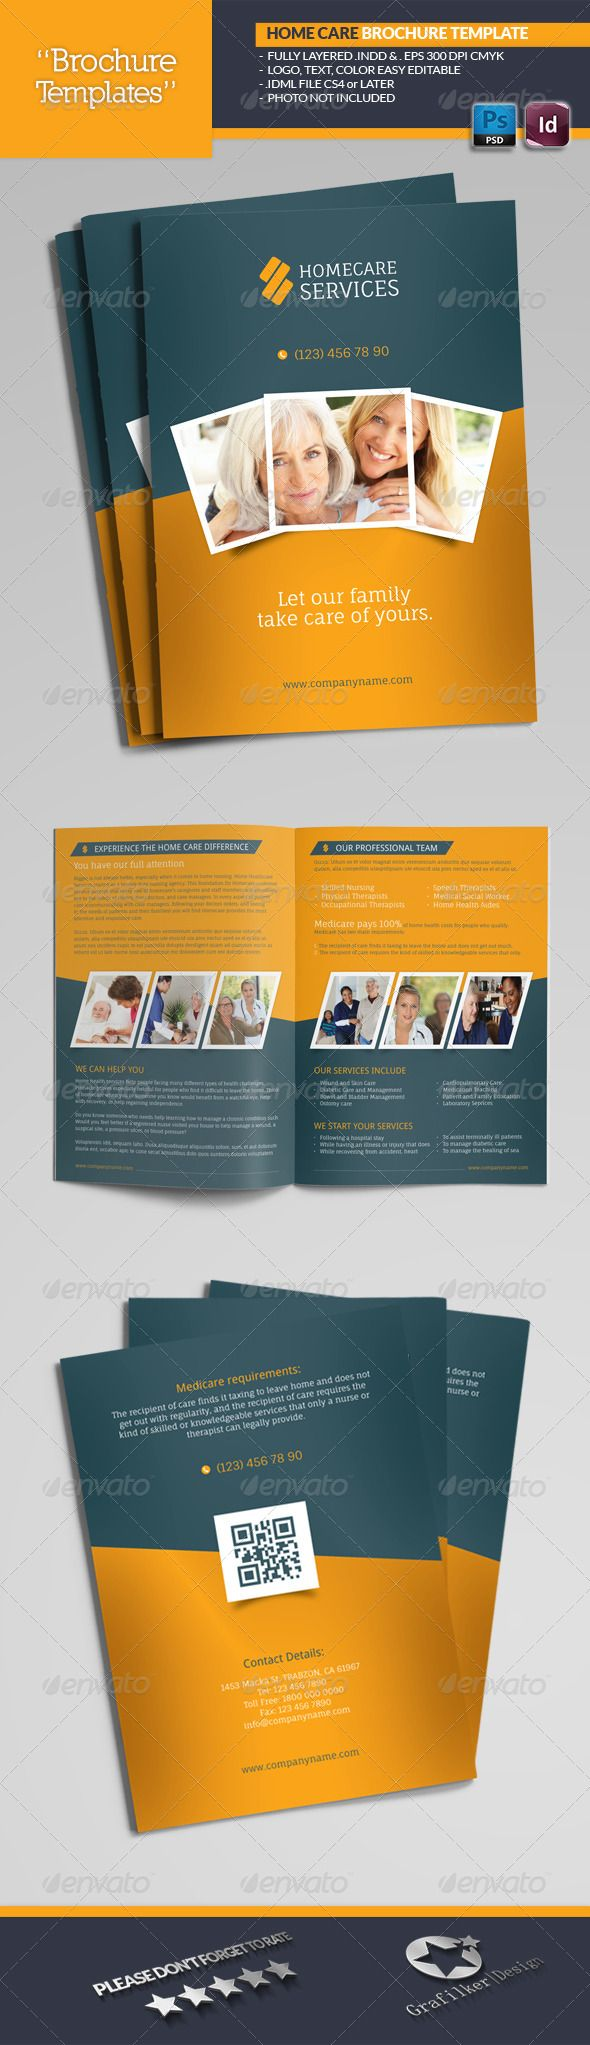 Home Care Brochure Templates Brochure Template Brochures And - Home care brochure template